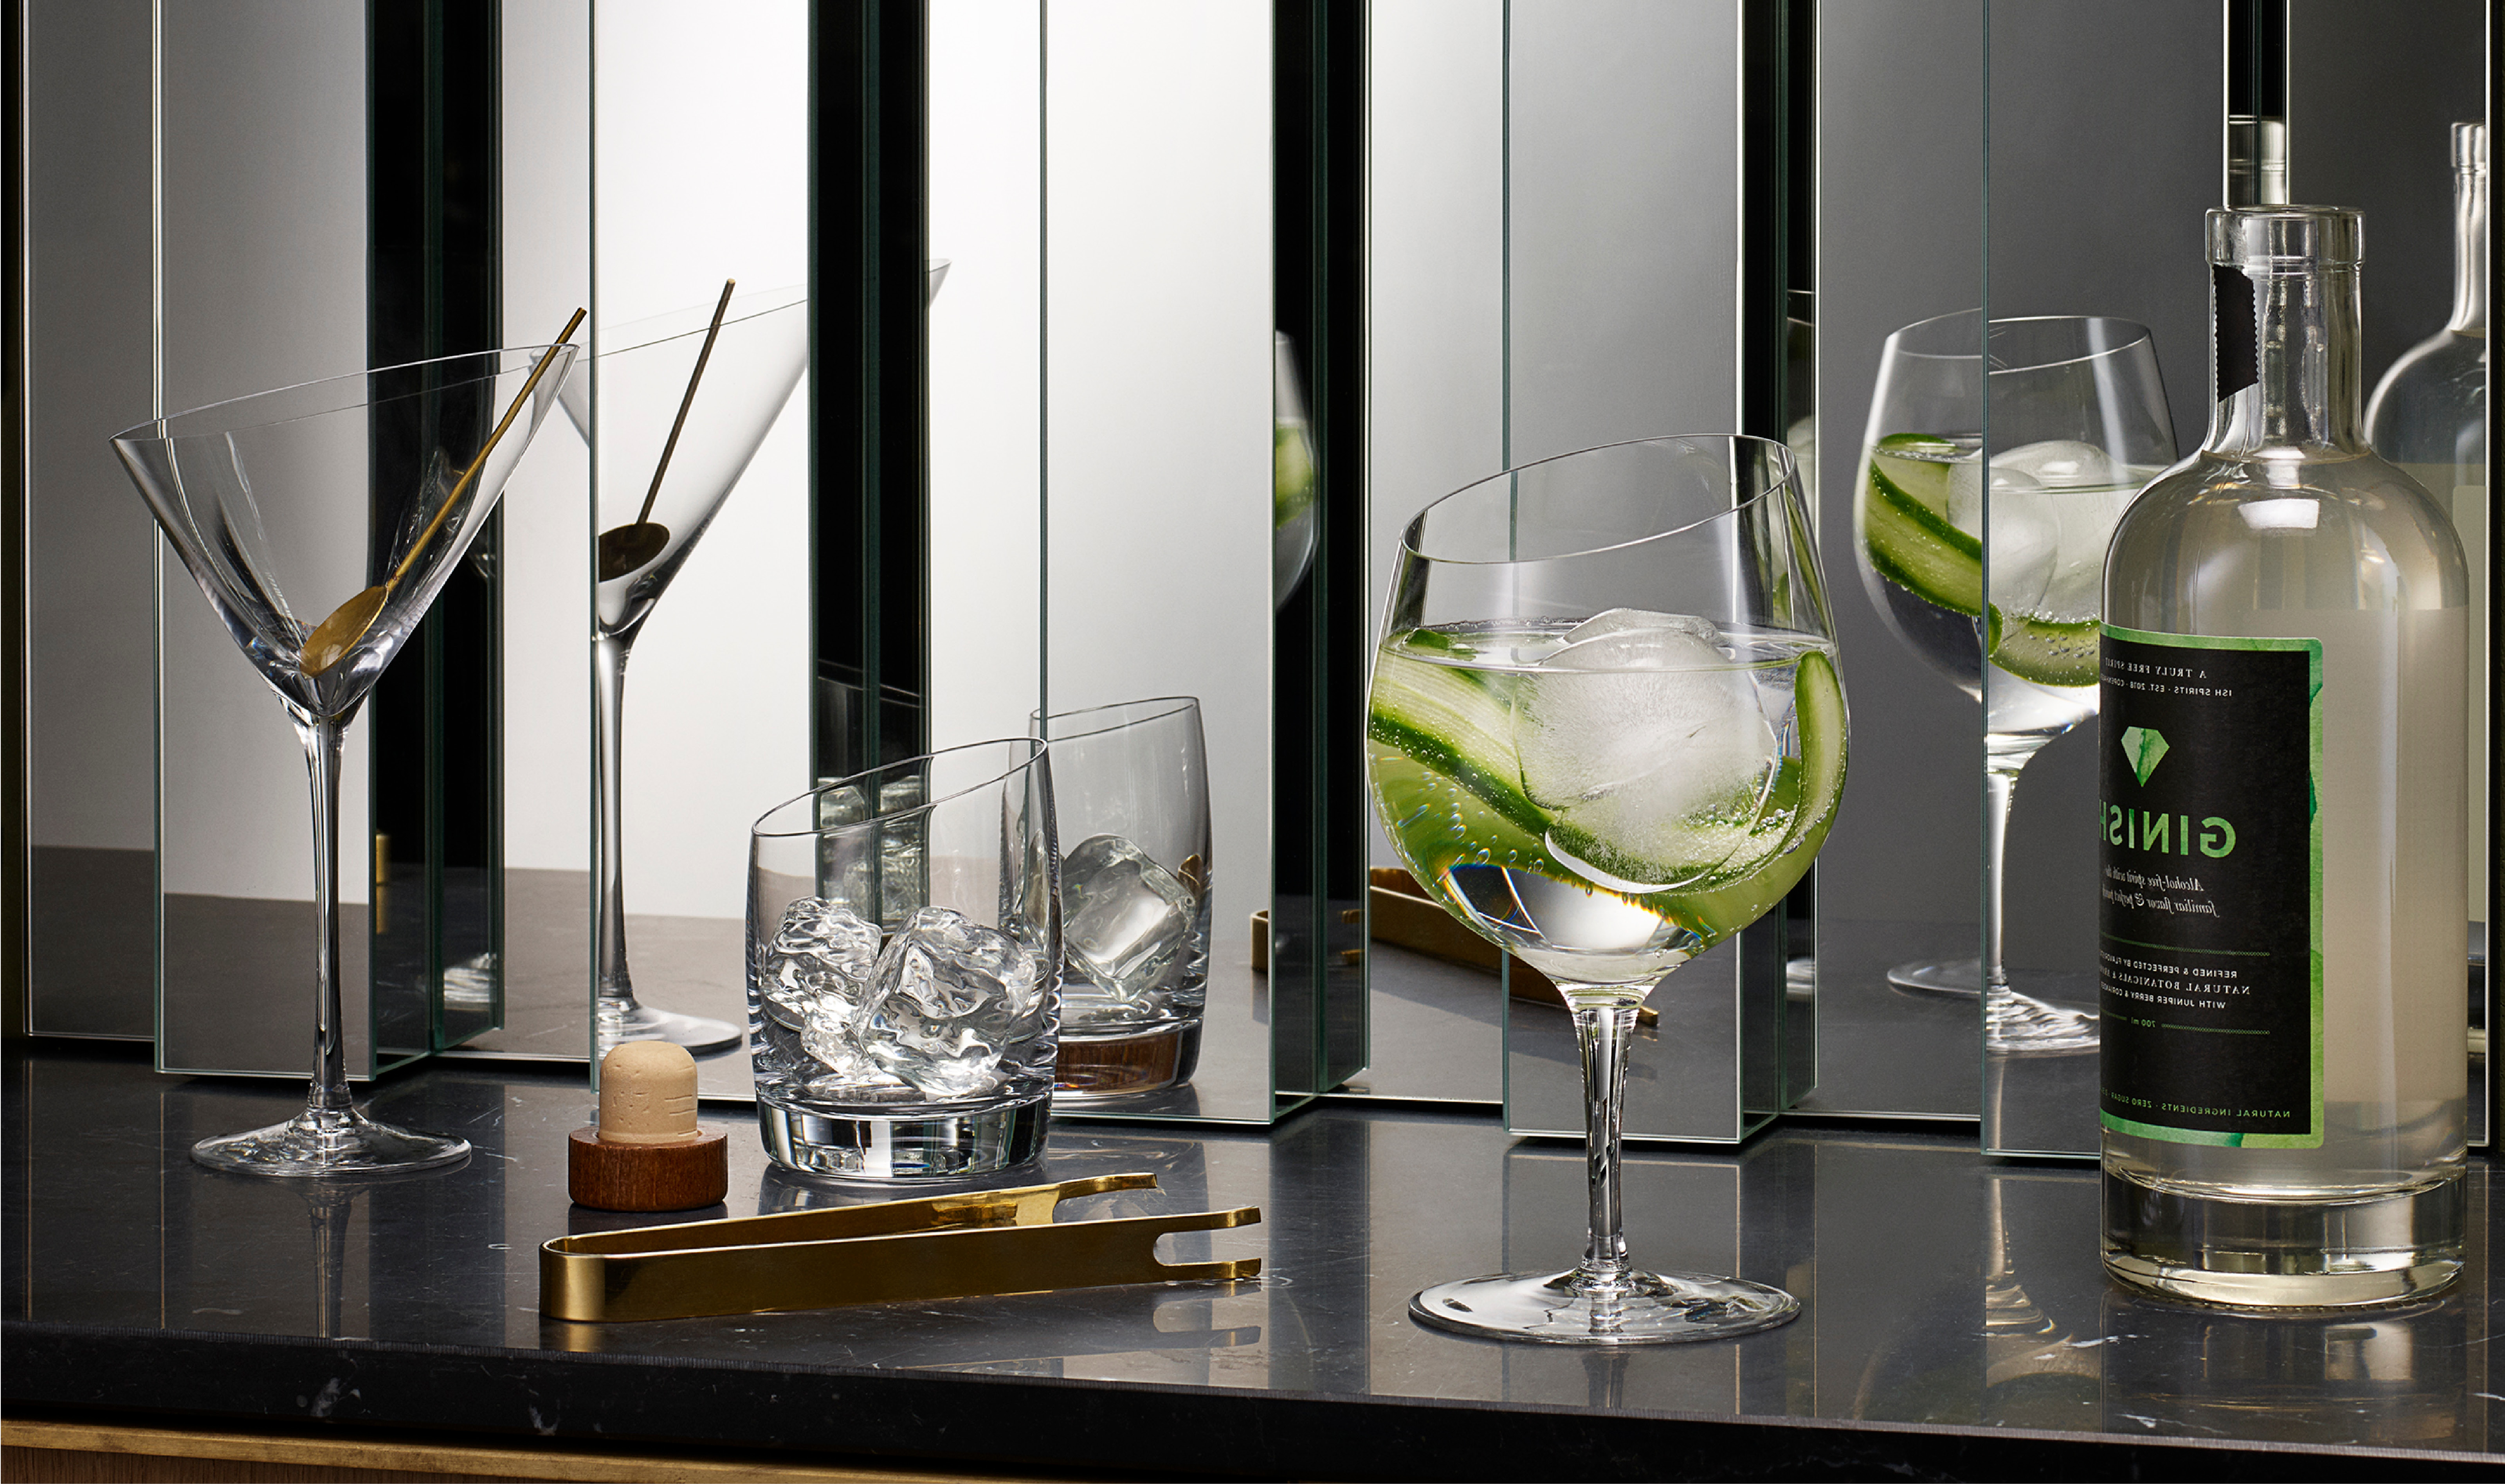 <p>Crazy about gin? Enjoy the special experience of drinking gin from our new gin glass which enhances both aroma and taste.</p>